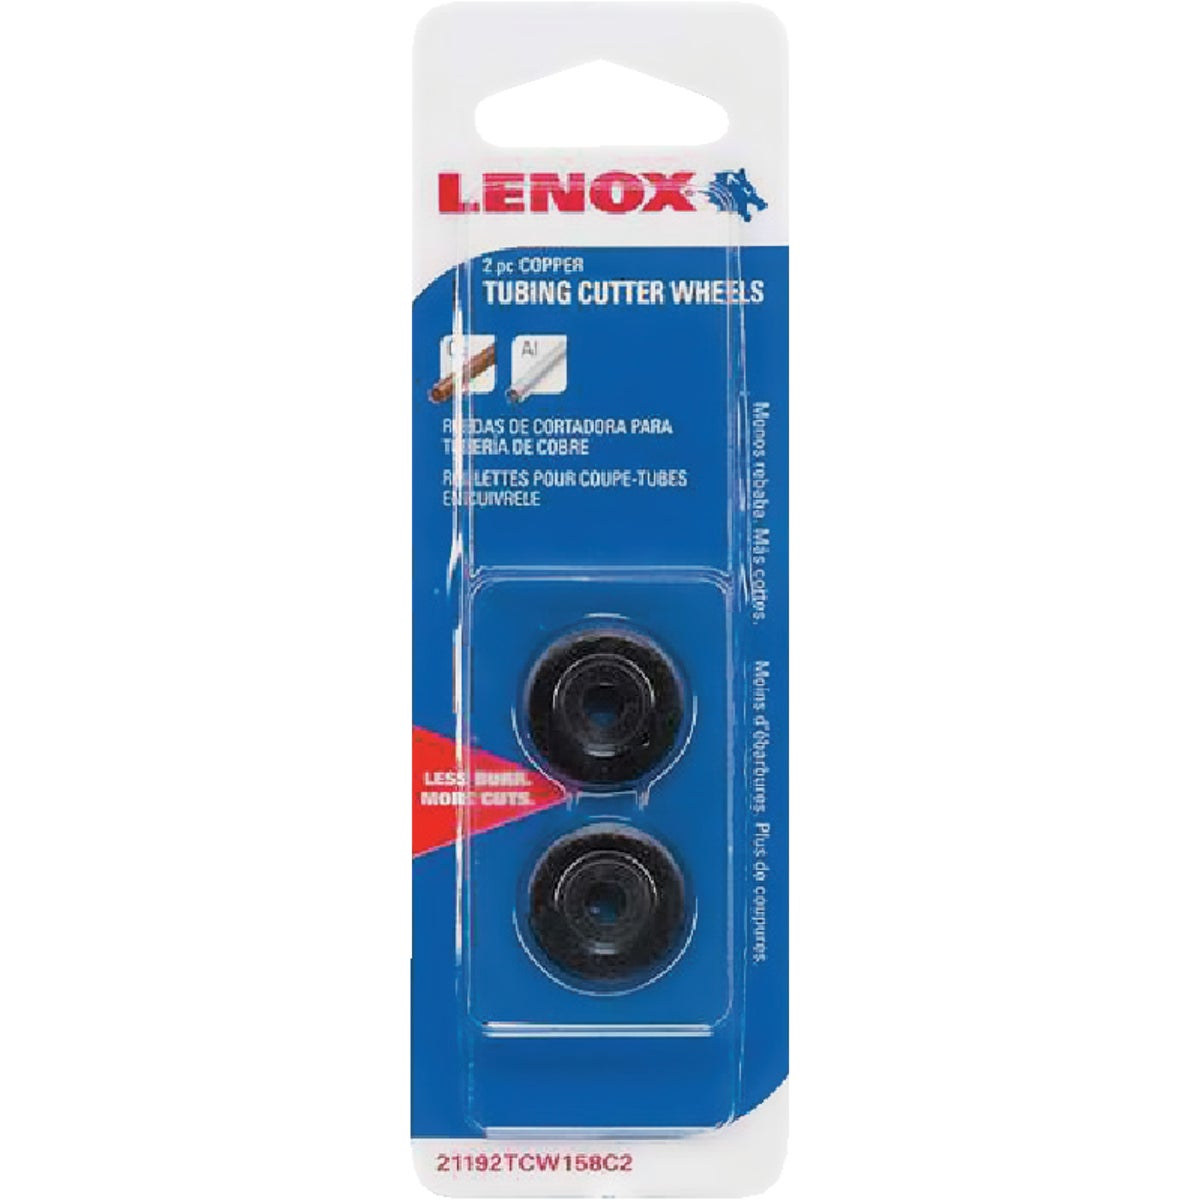 REPLACEMENT CUTTER WHEEL - 21192-TCW158C2 by Lenox